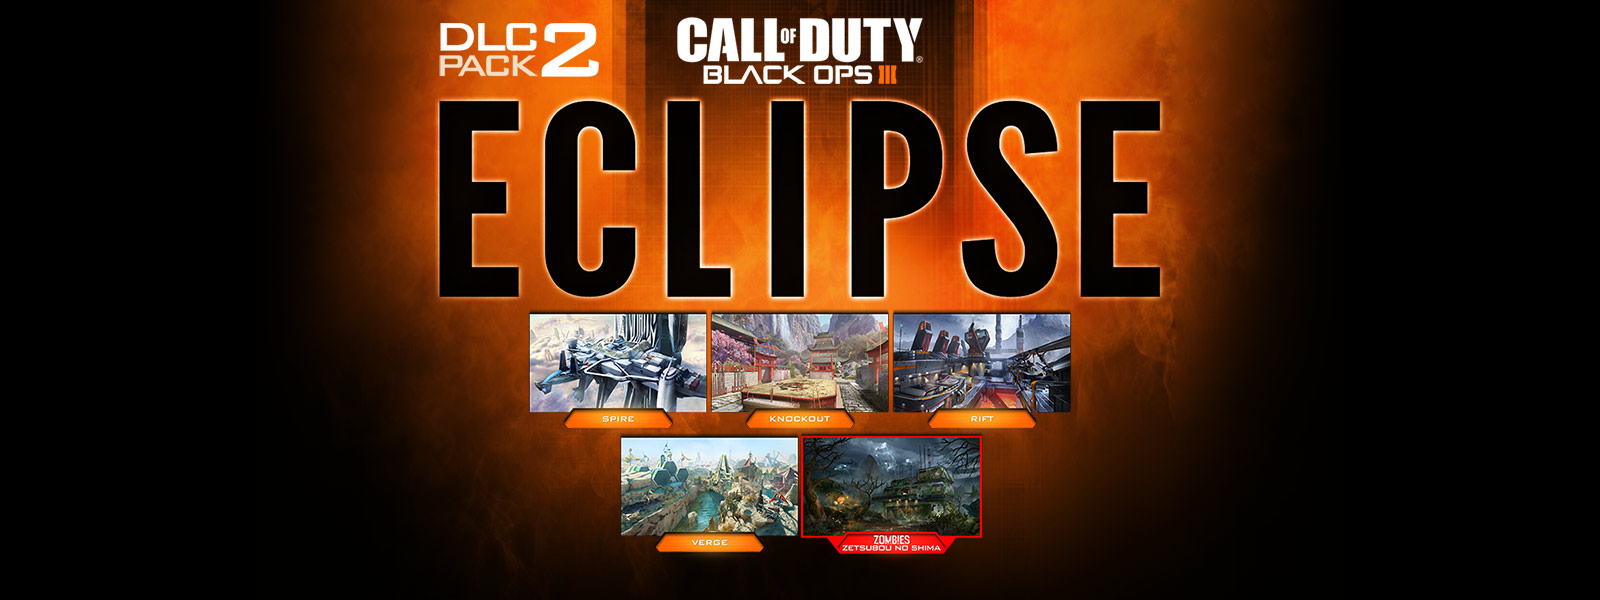 Collage de capturas de pantalla de mapas de Eclipse DLC